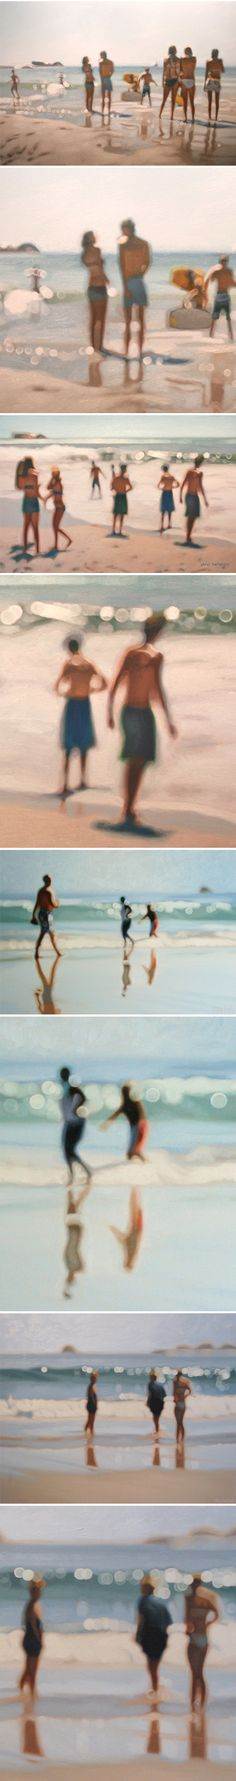 These paintings are by South African artist Philip Barlow. Realistic, but not… like an old, out of focus photograph. So lovely. Now, if you'll excuse me, I'm off to the beach!